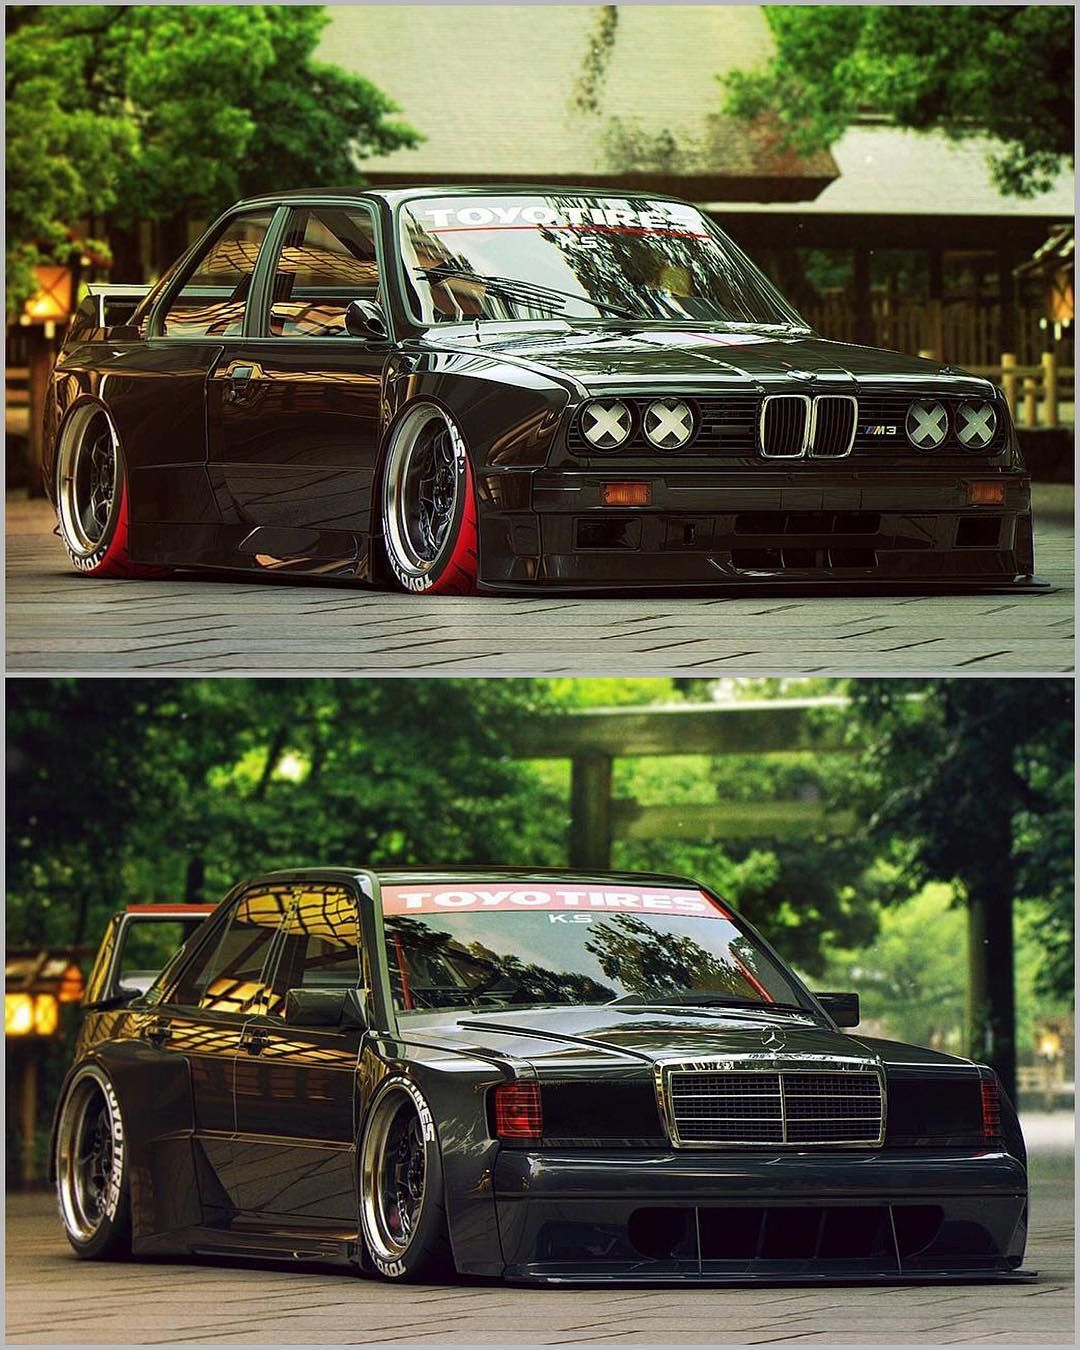 Bmw E30 Vs Mercedes 190 Evo Top Or Bottom Design By At Thekyza